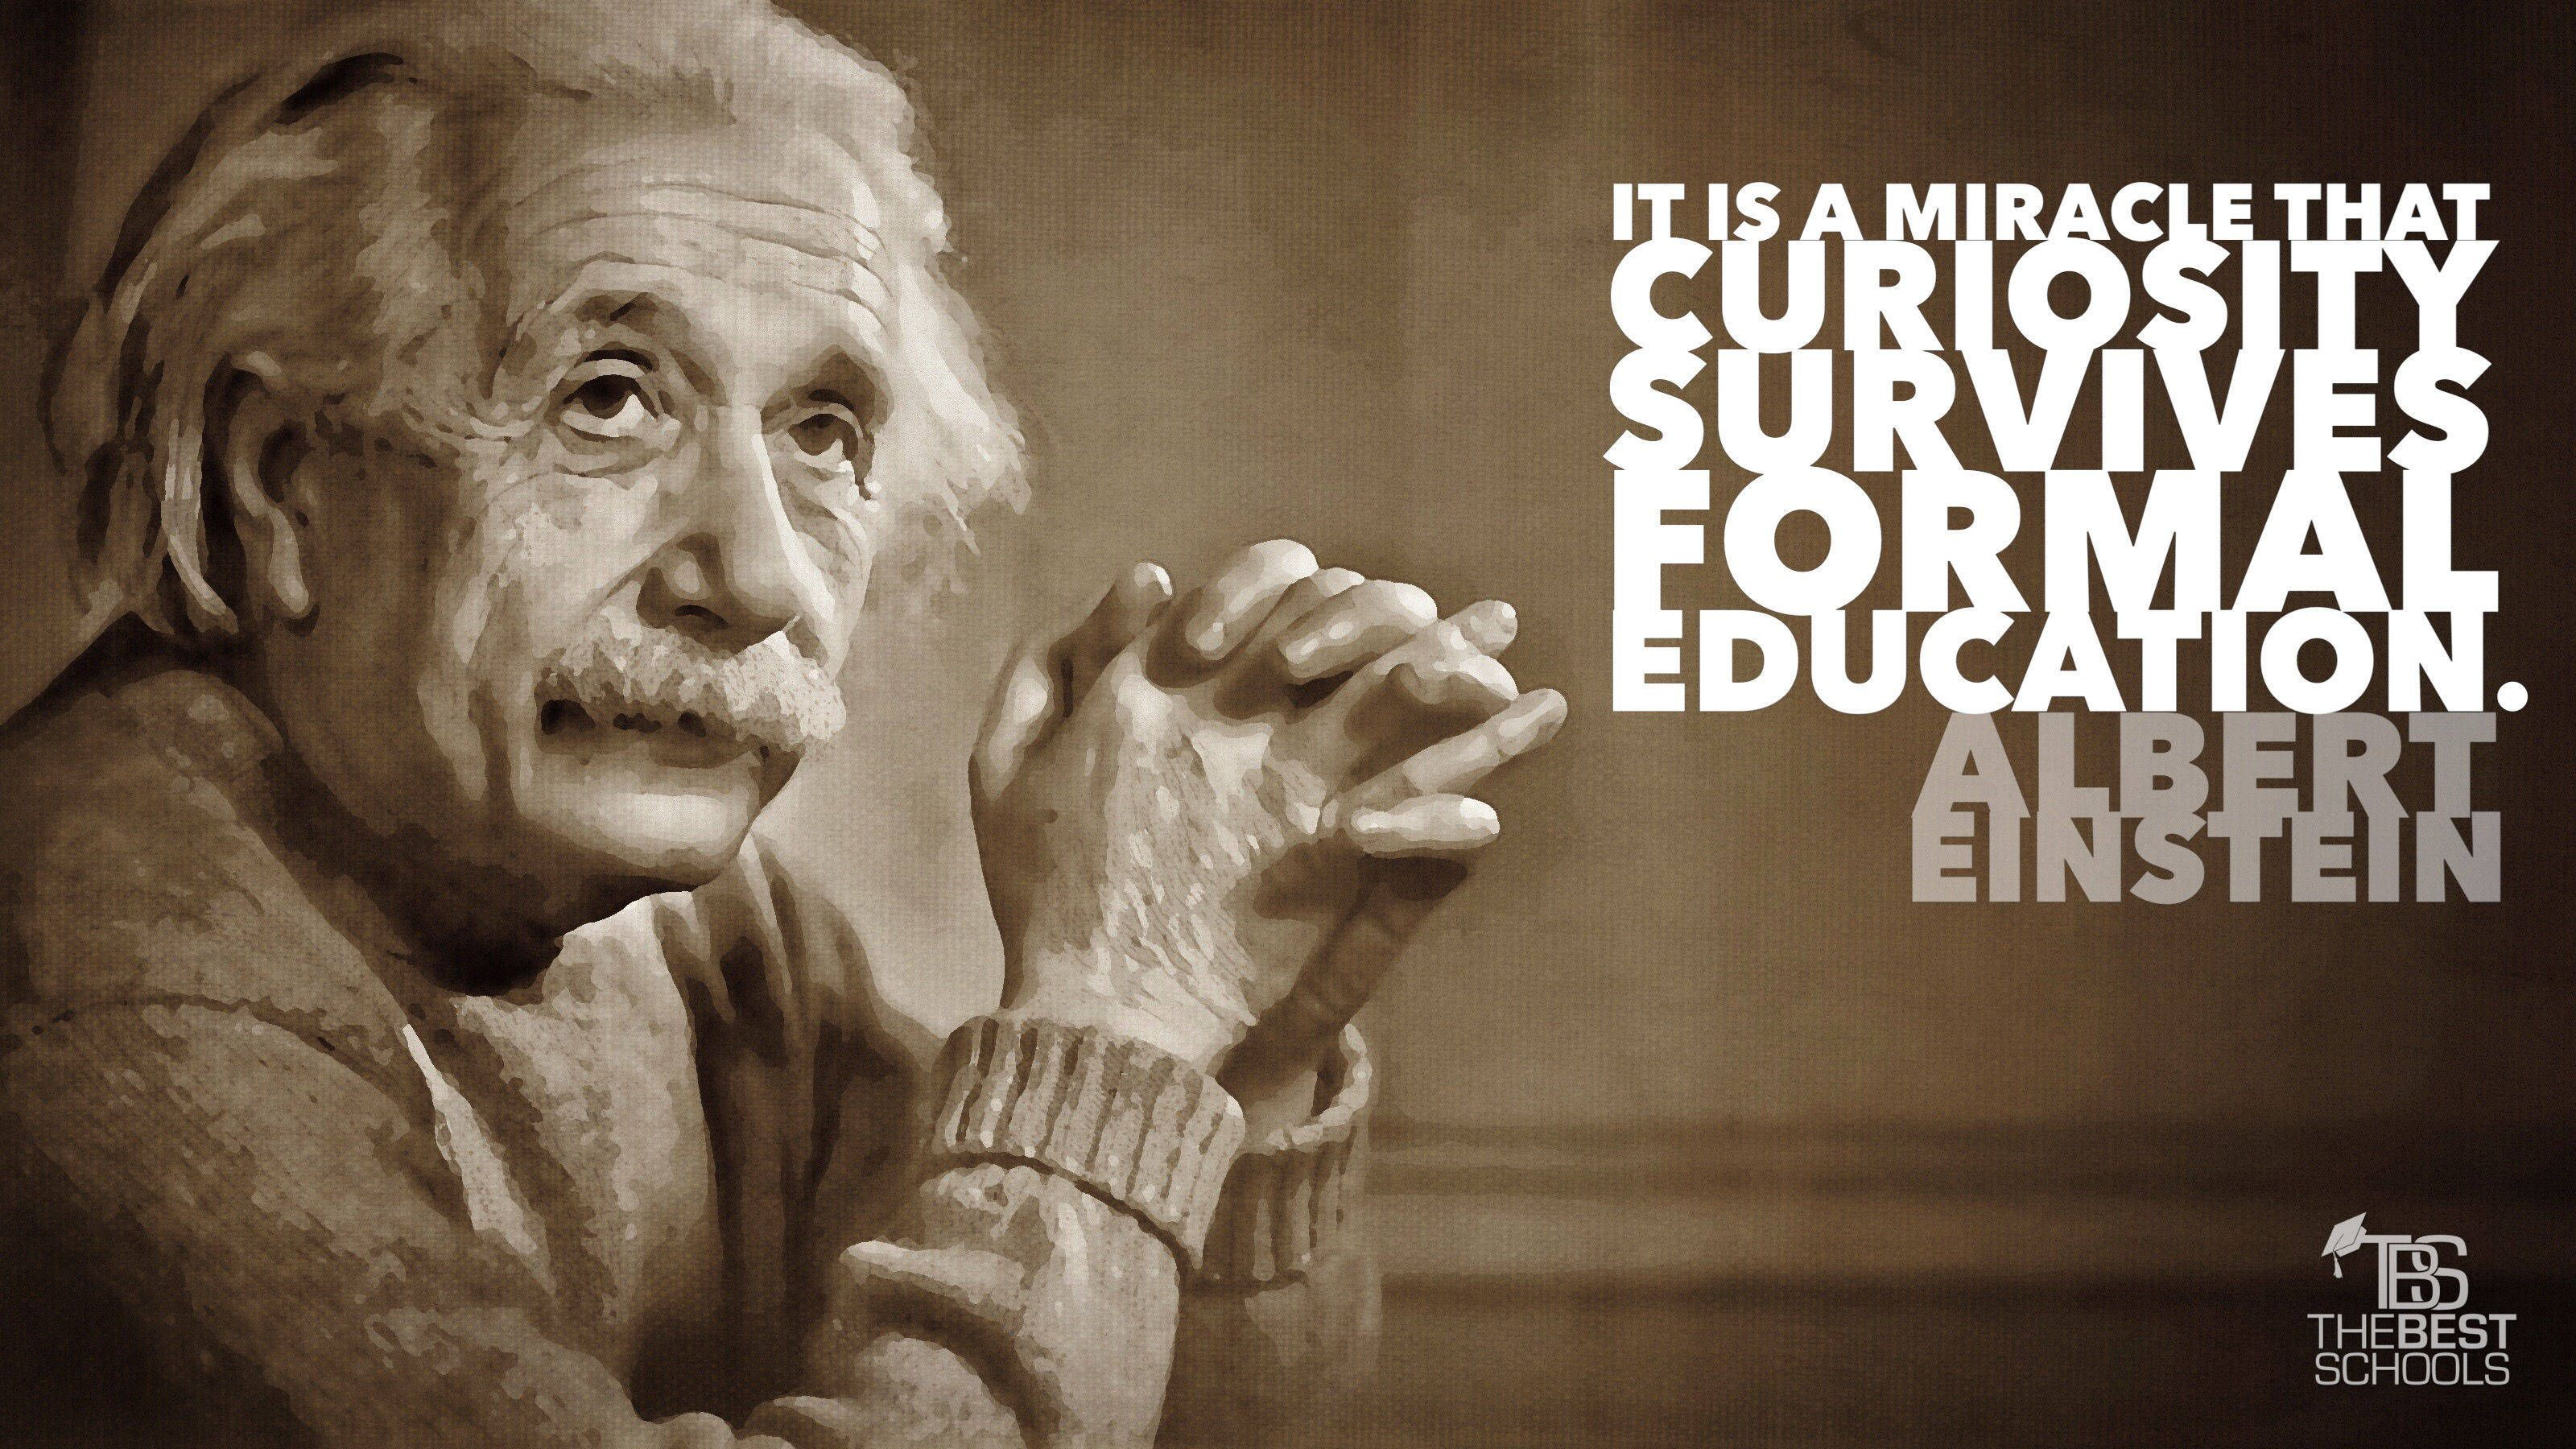 Miracle Curiosity Survives Formal Education